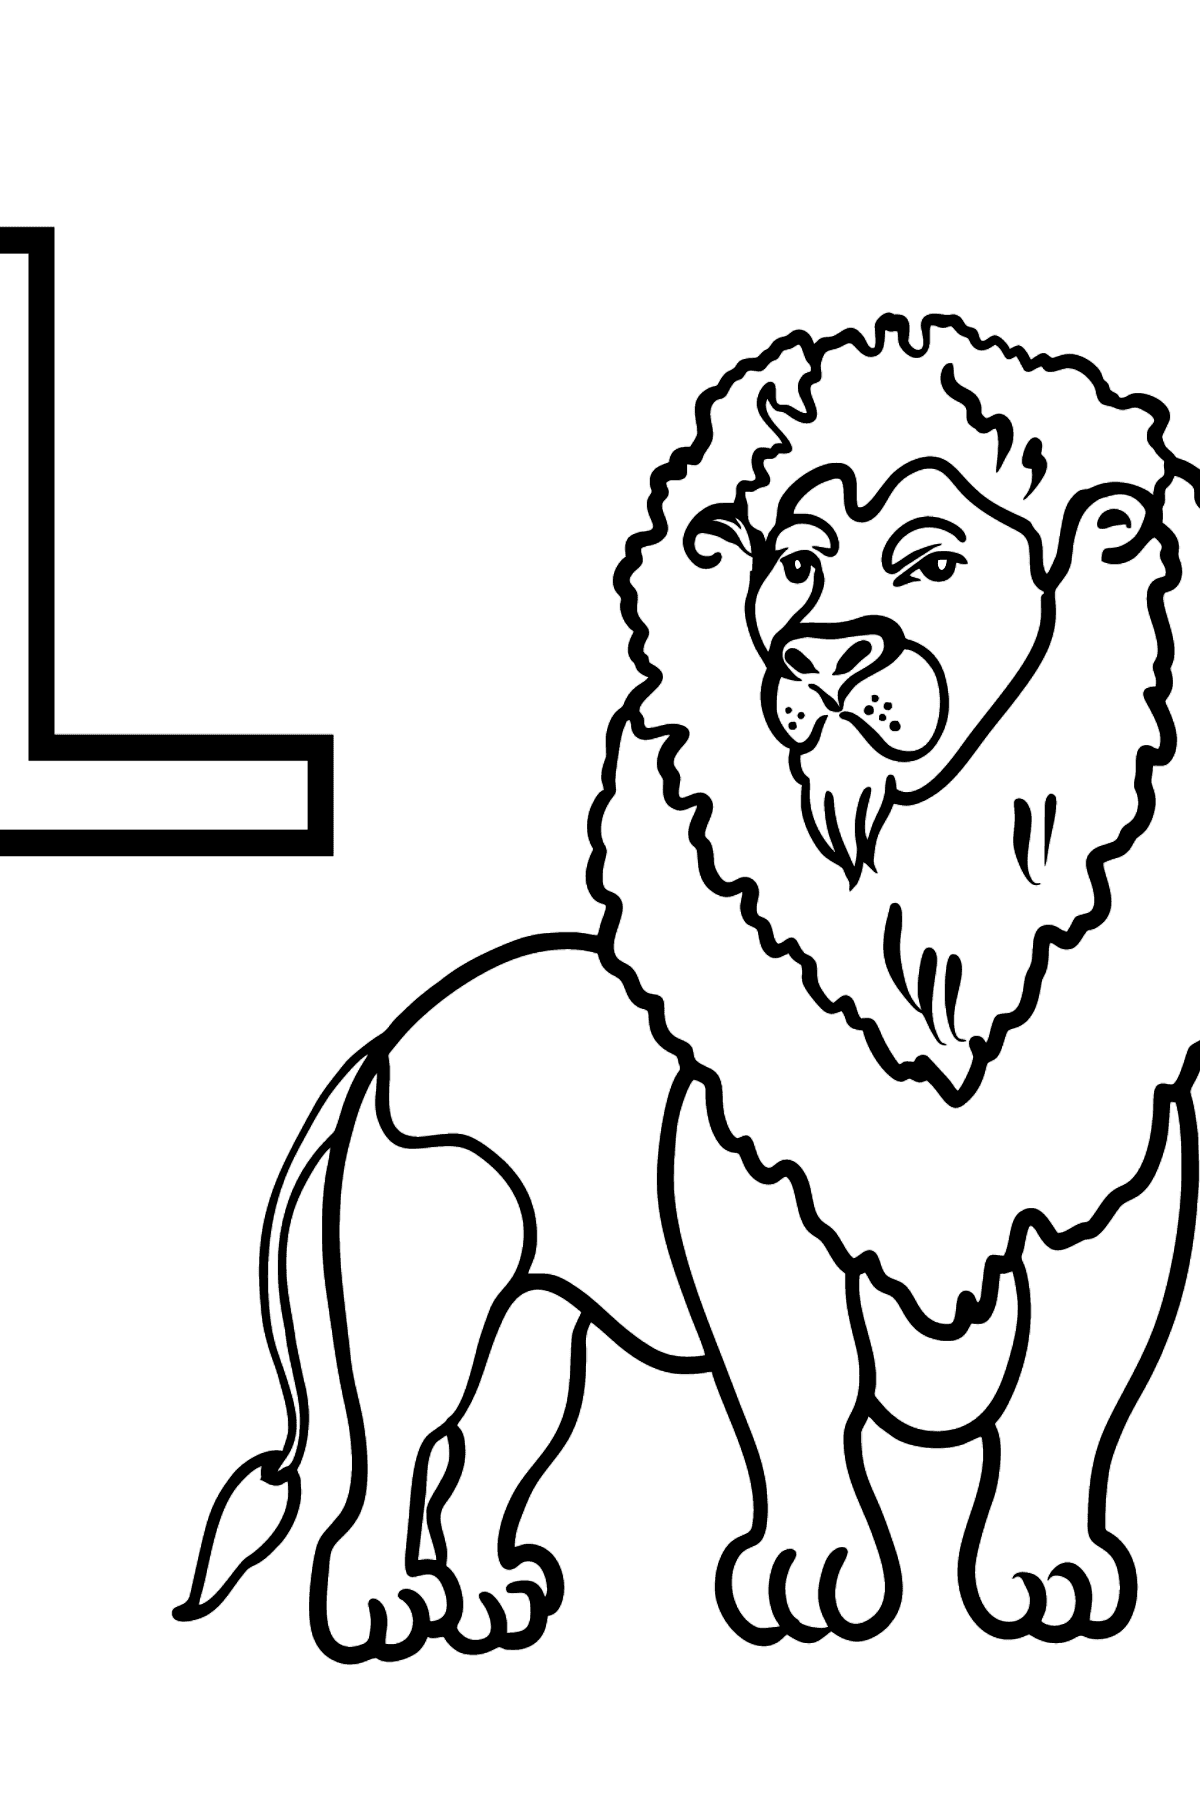 English Letter L coloring pages - LION - Coloring Pages for Kids